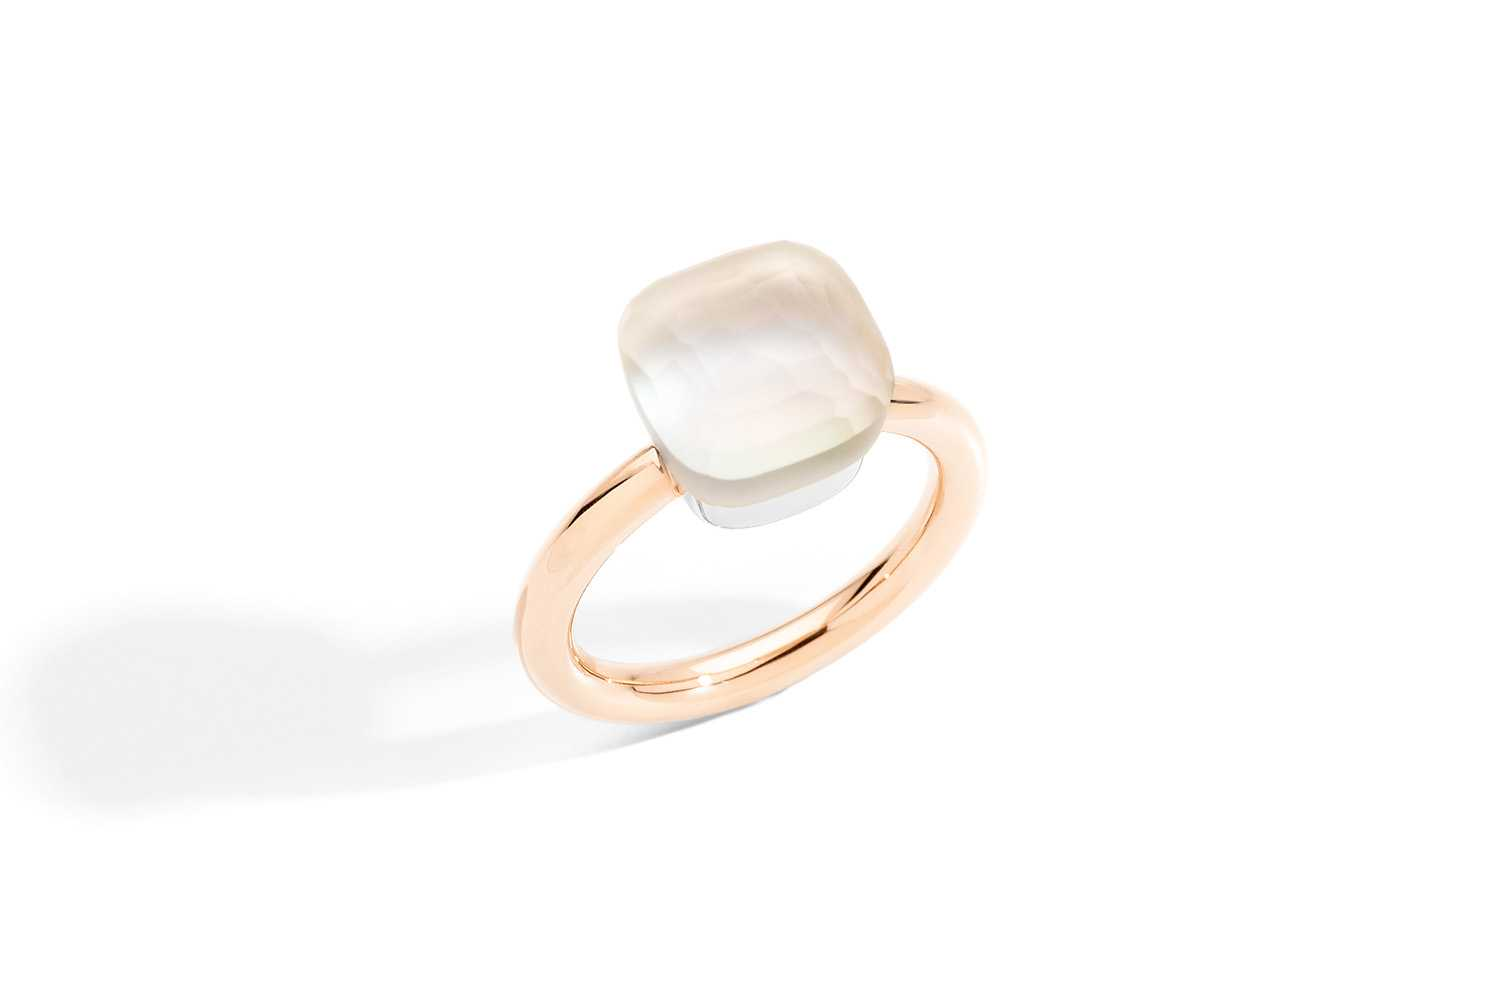 NUDO-GELE-ring-in-rose-gold-with-white-topaz-mother-of-pearl-by-Pomellato